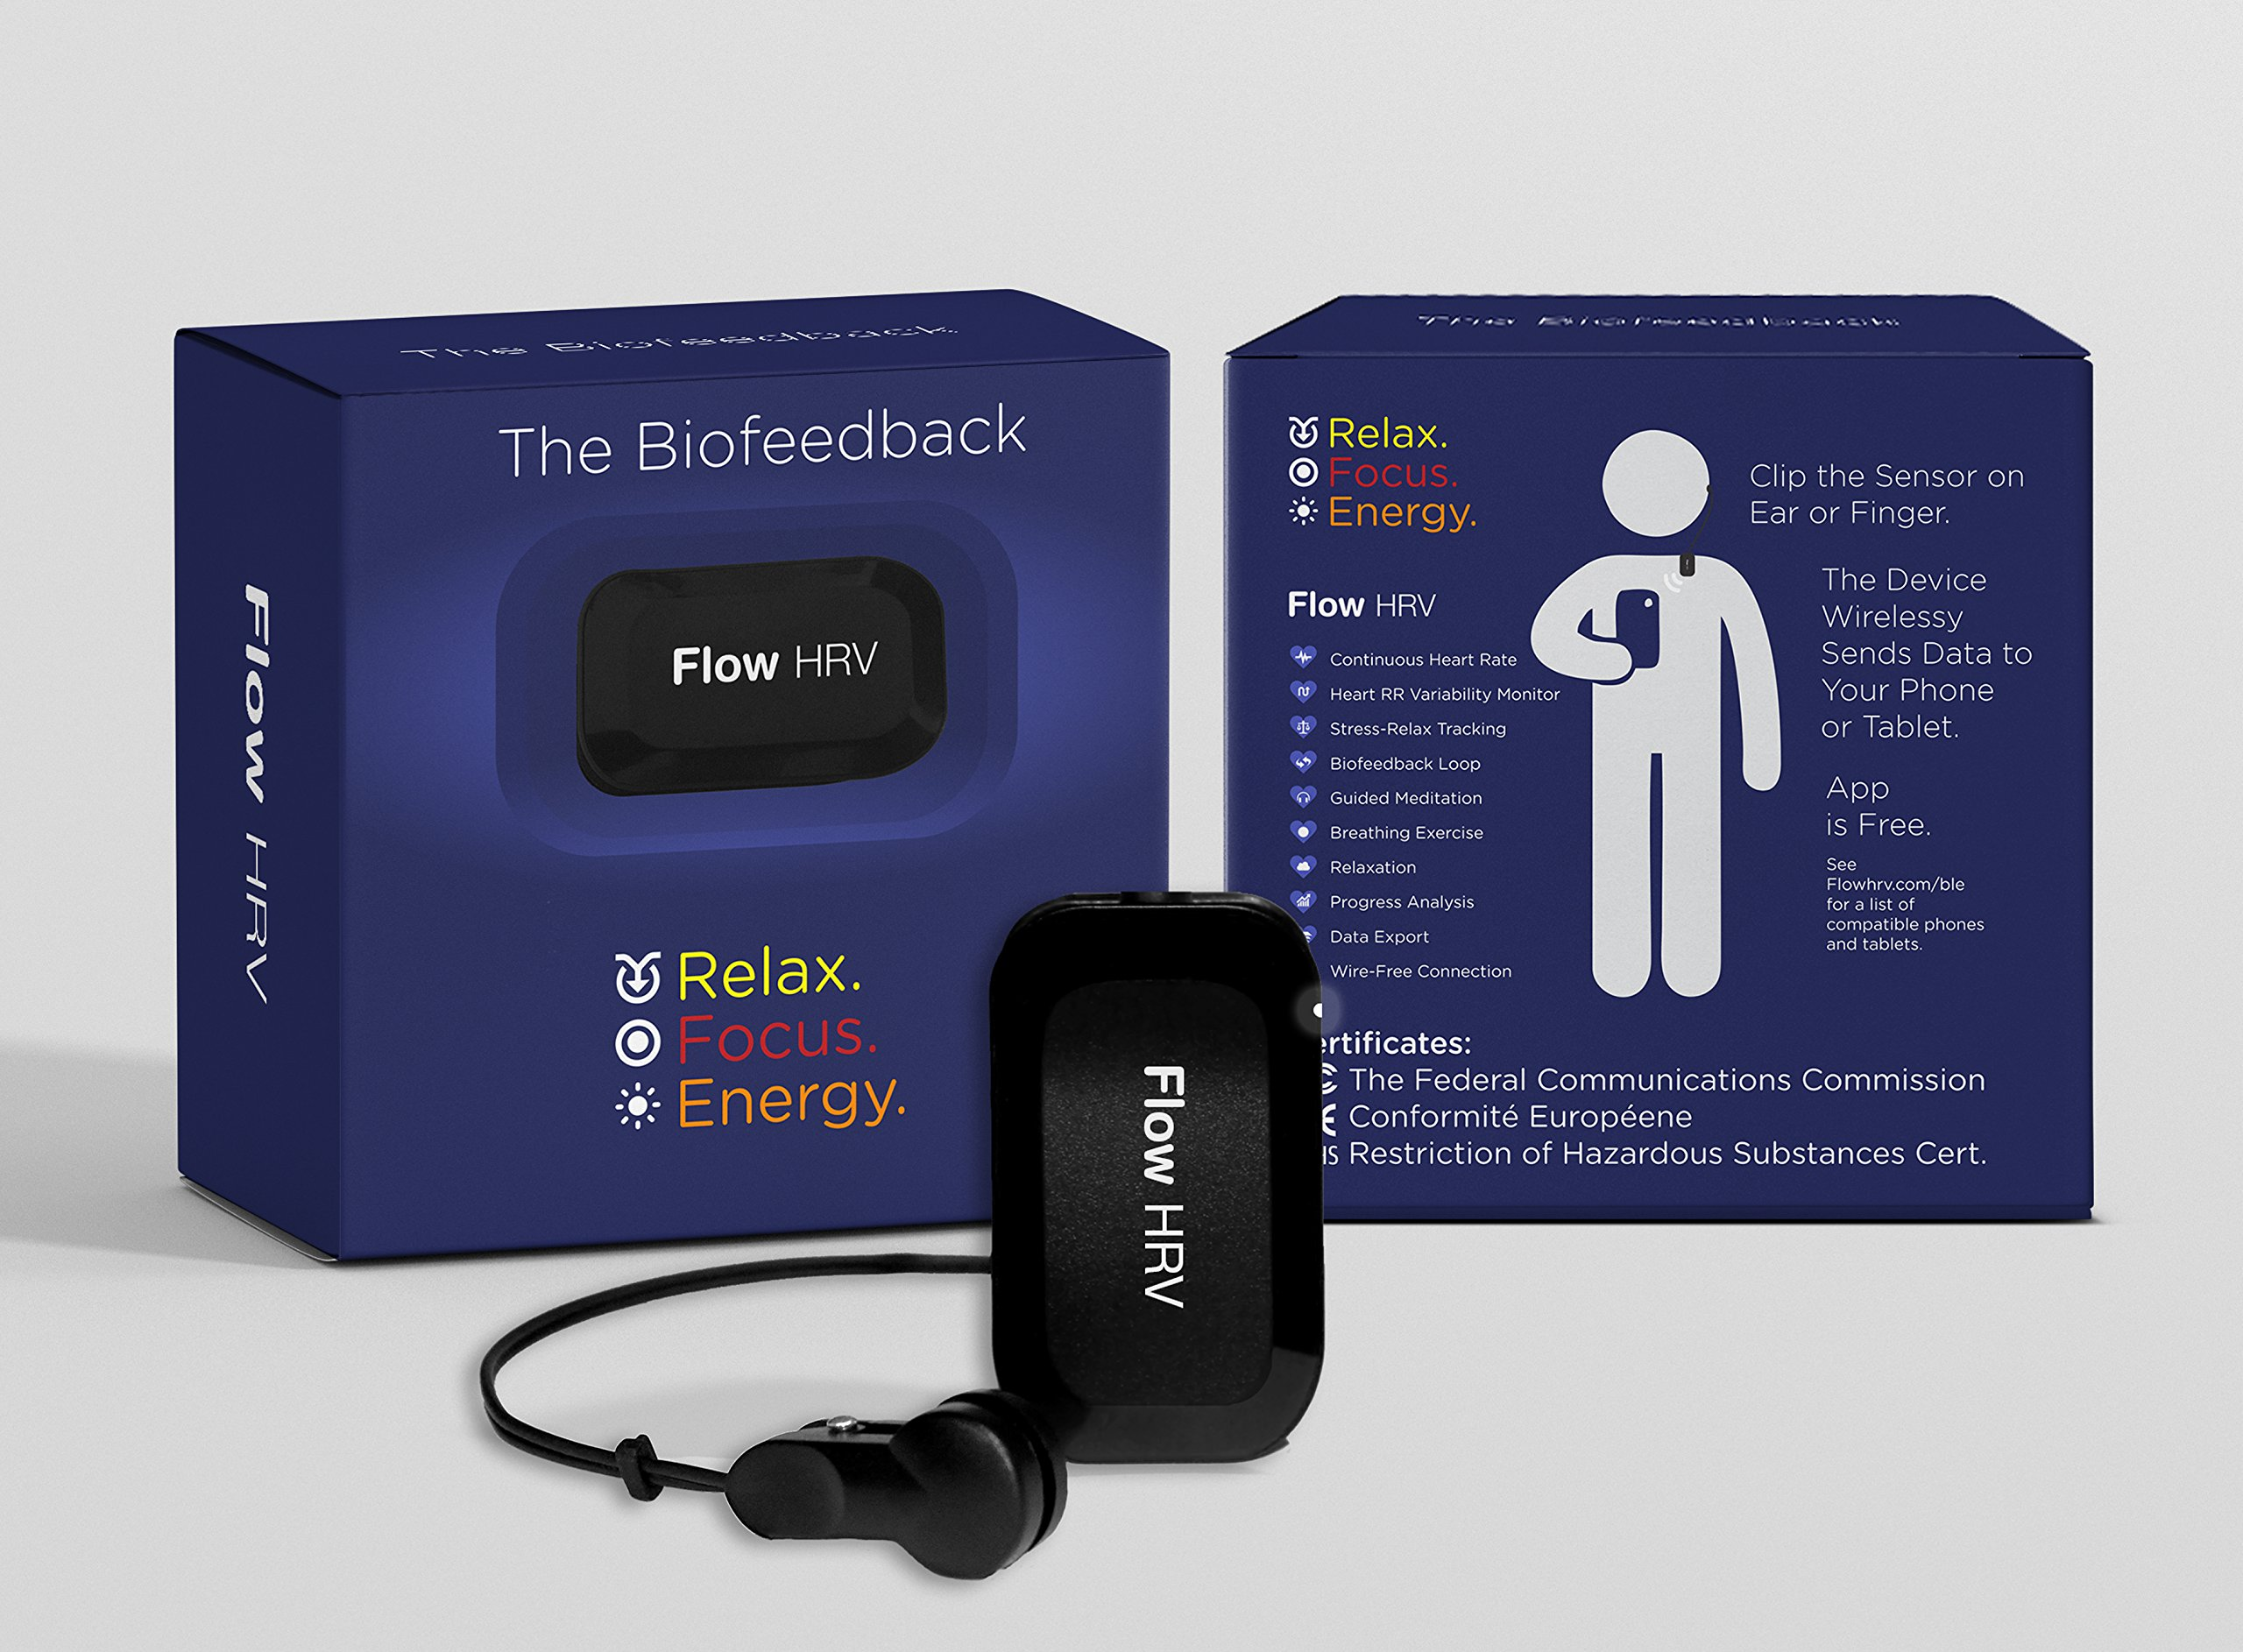 Flow HRV: Biofeedback Wireless Android Device & Games for Meditation, Relaxation and Focus Traning